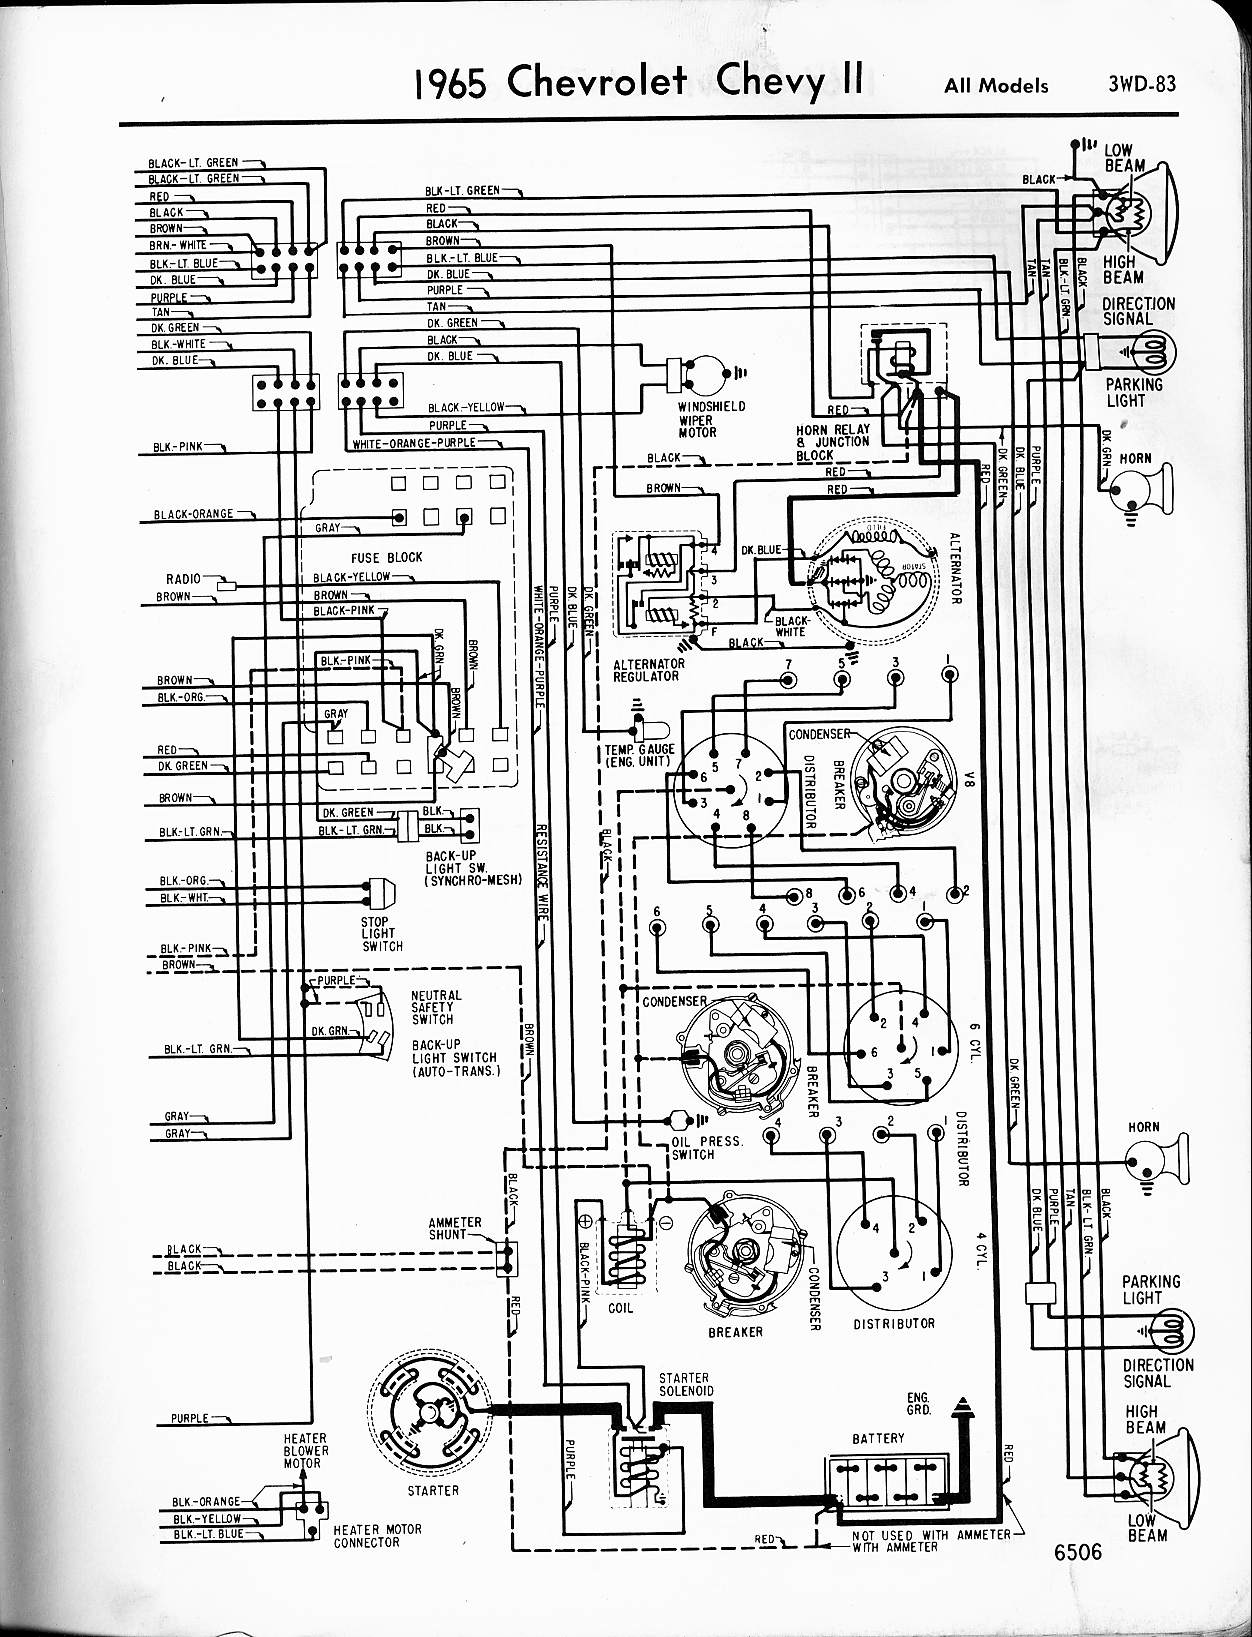 MWireChev65_3WD 083 chevy diagrams 71 mustang wiring diagram at bayanpartner.co